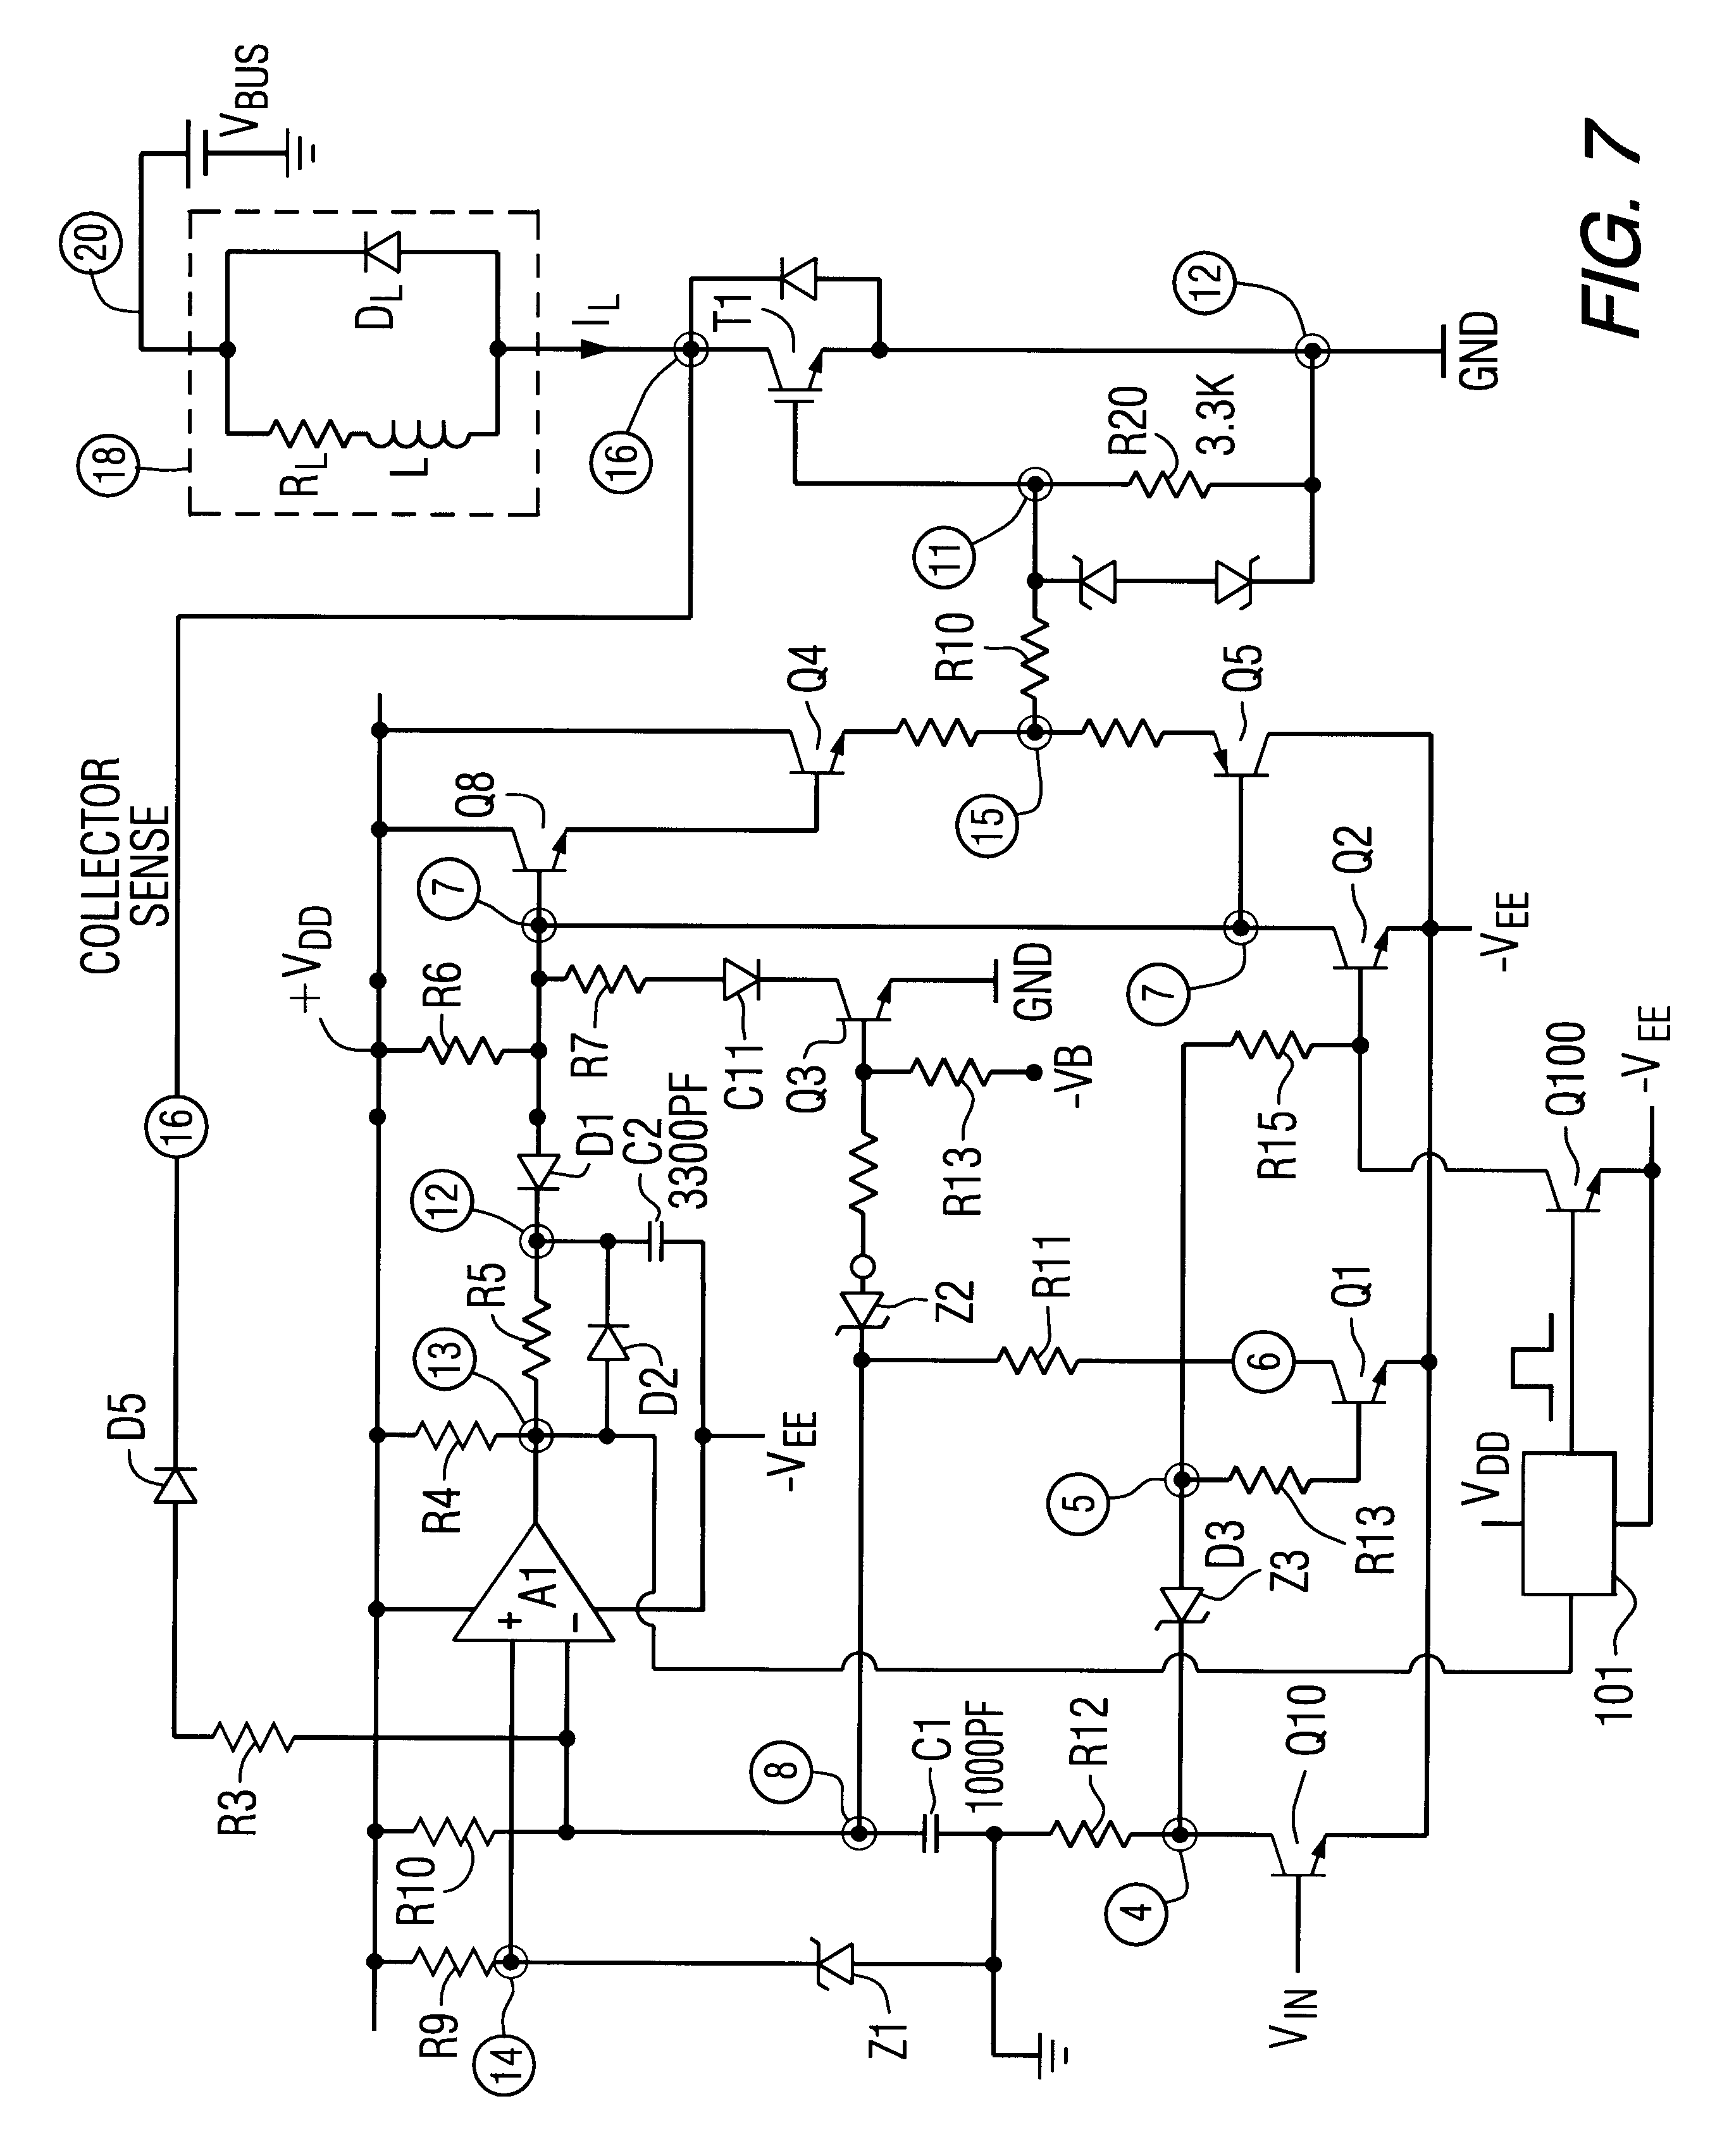 patent us6275093 - igbt gate drive circuit with short circuit protection